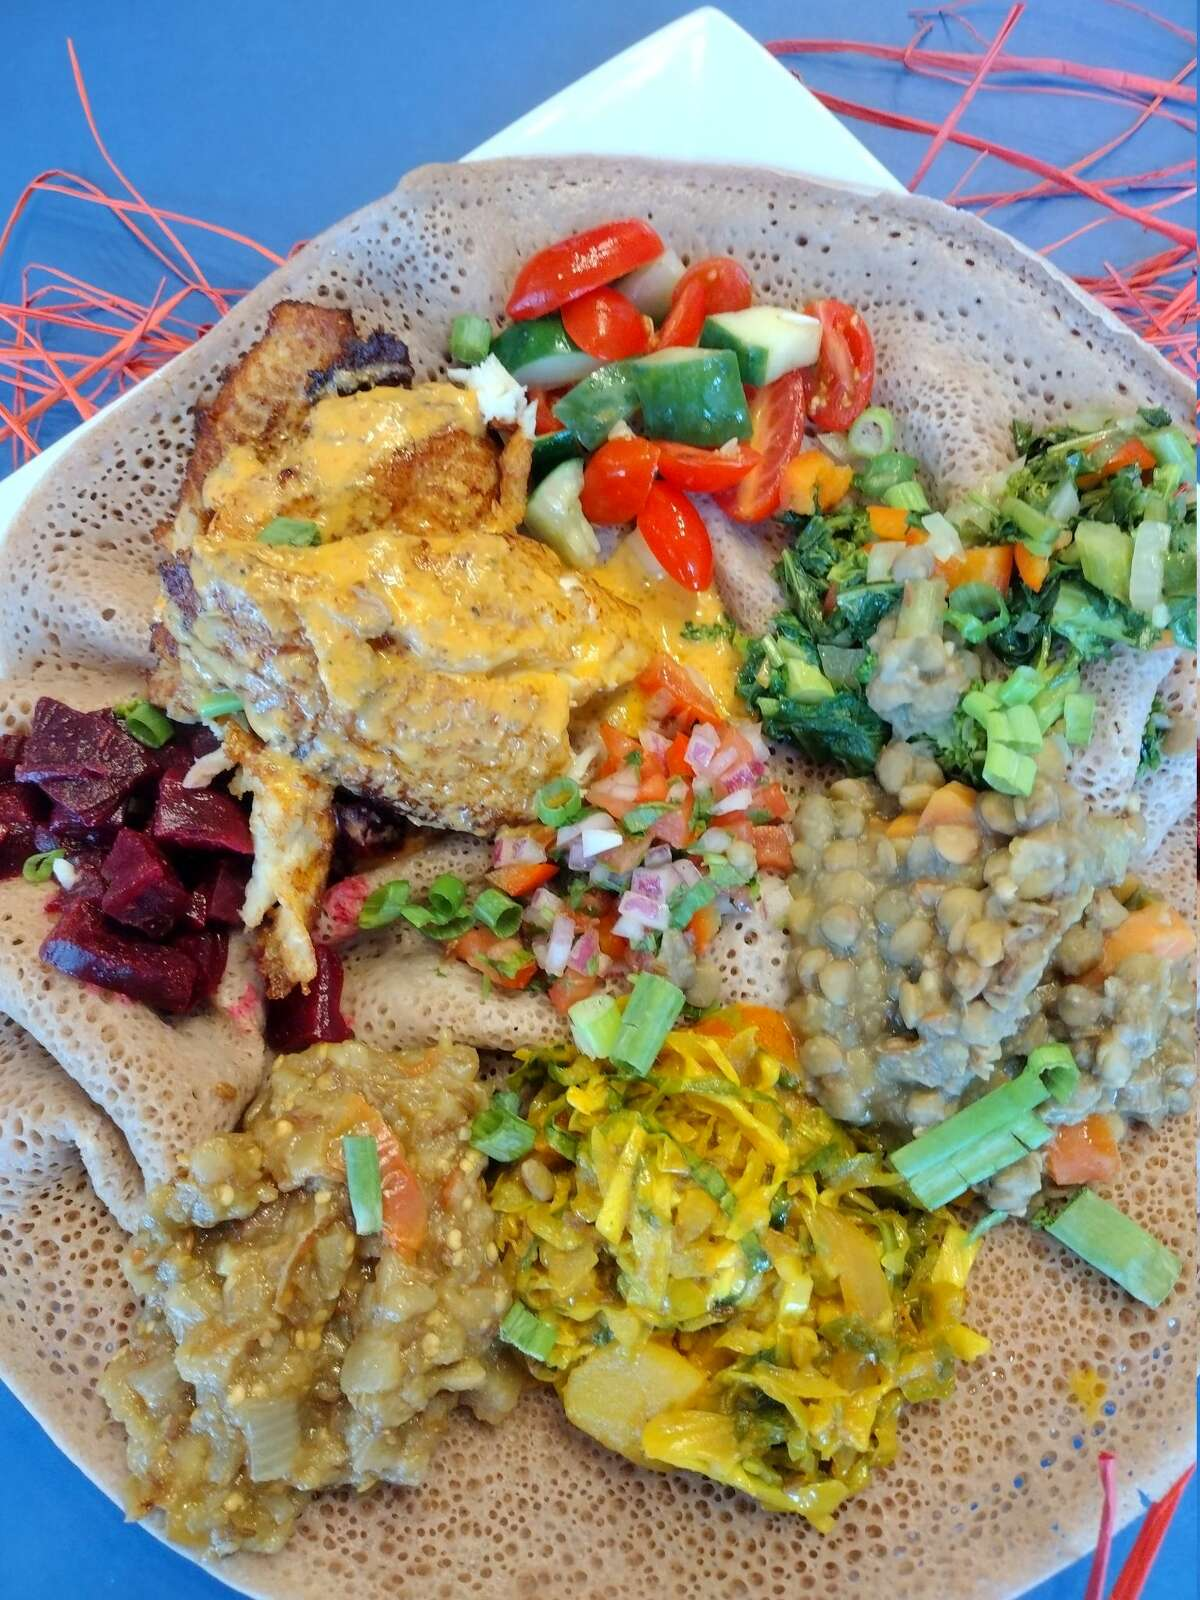 The Ethiopian platter, with spongy Ethiopian flatbread called injera, is available nightly at Umana.